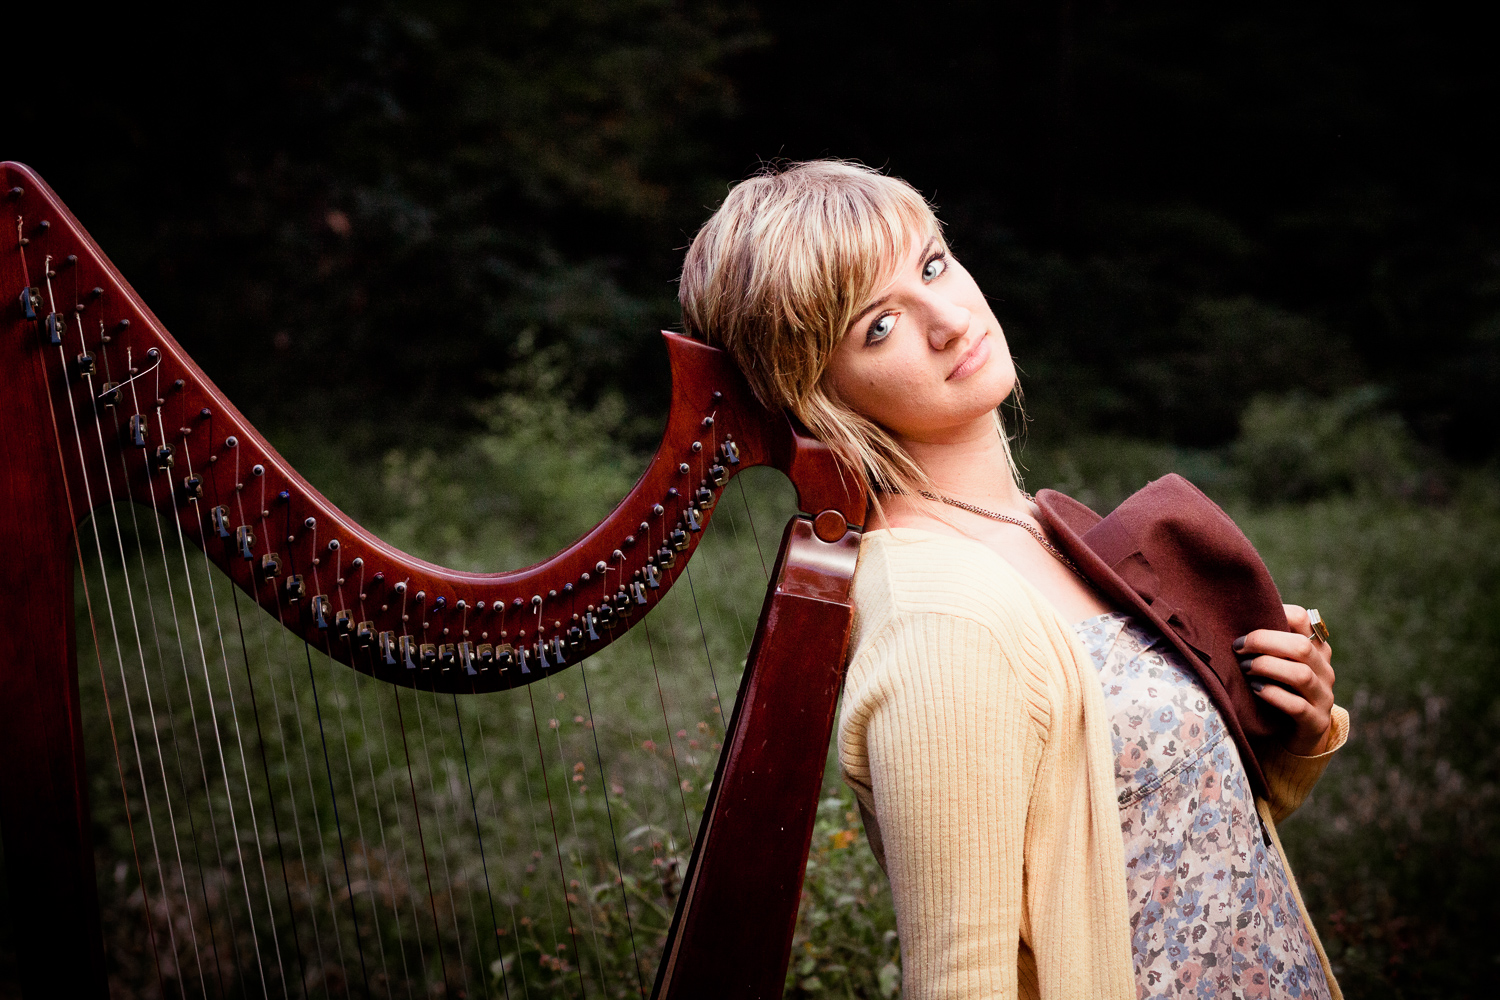 Central New Jersey Photographer Styled Photo Session with Harpists-6.jpg